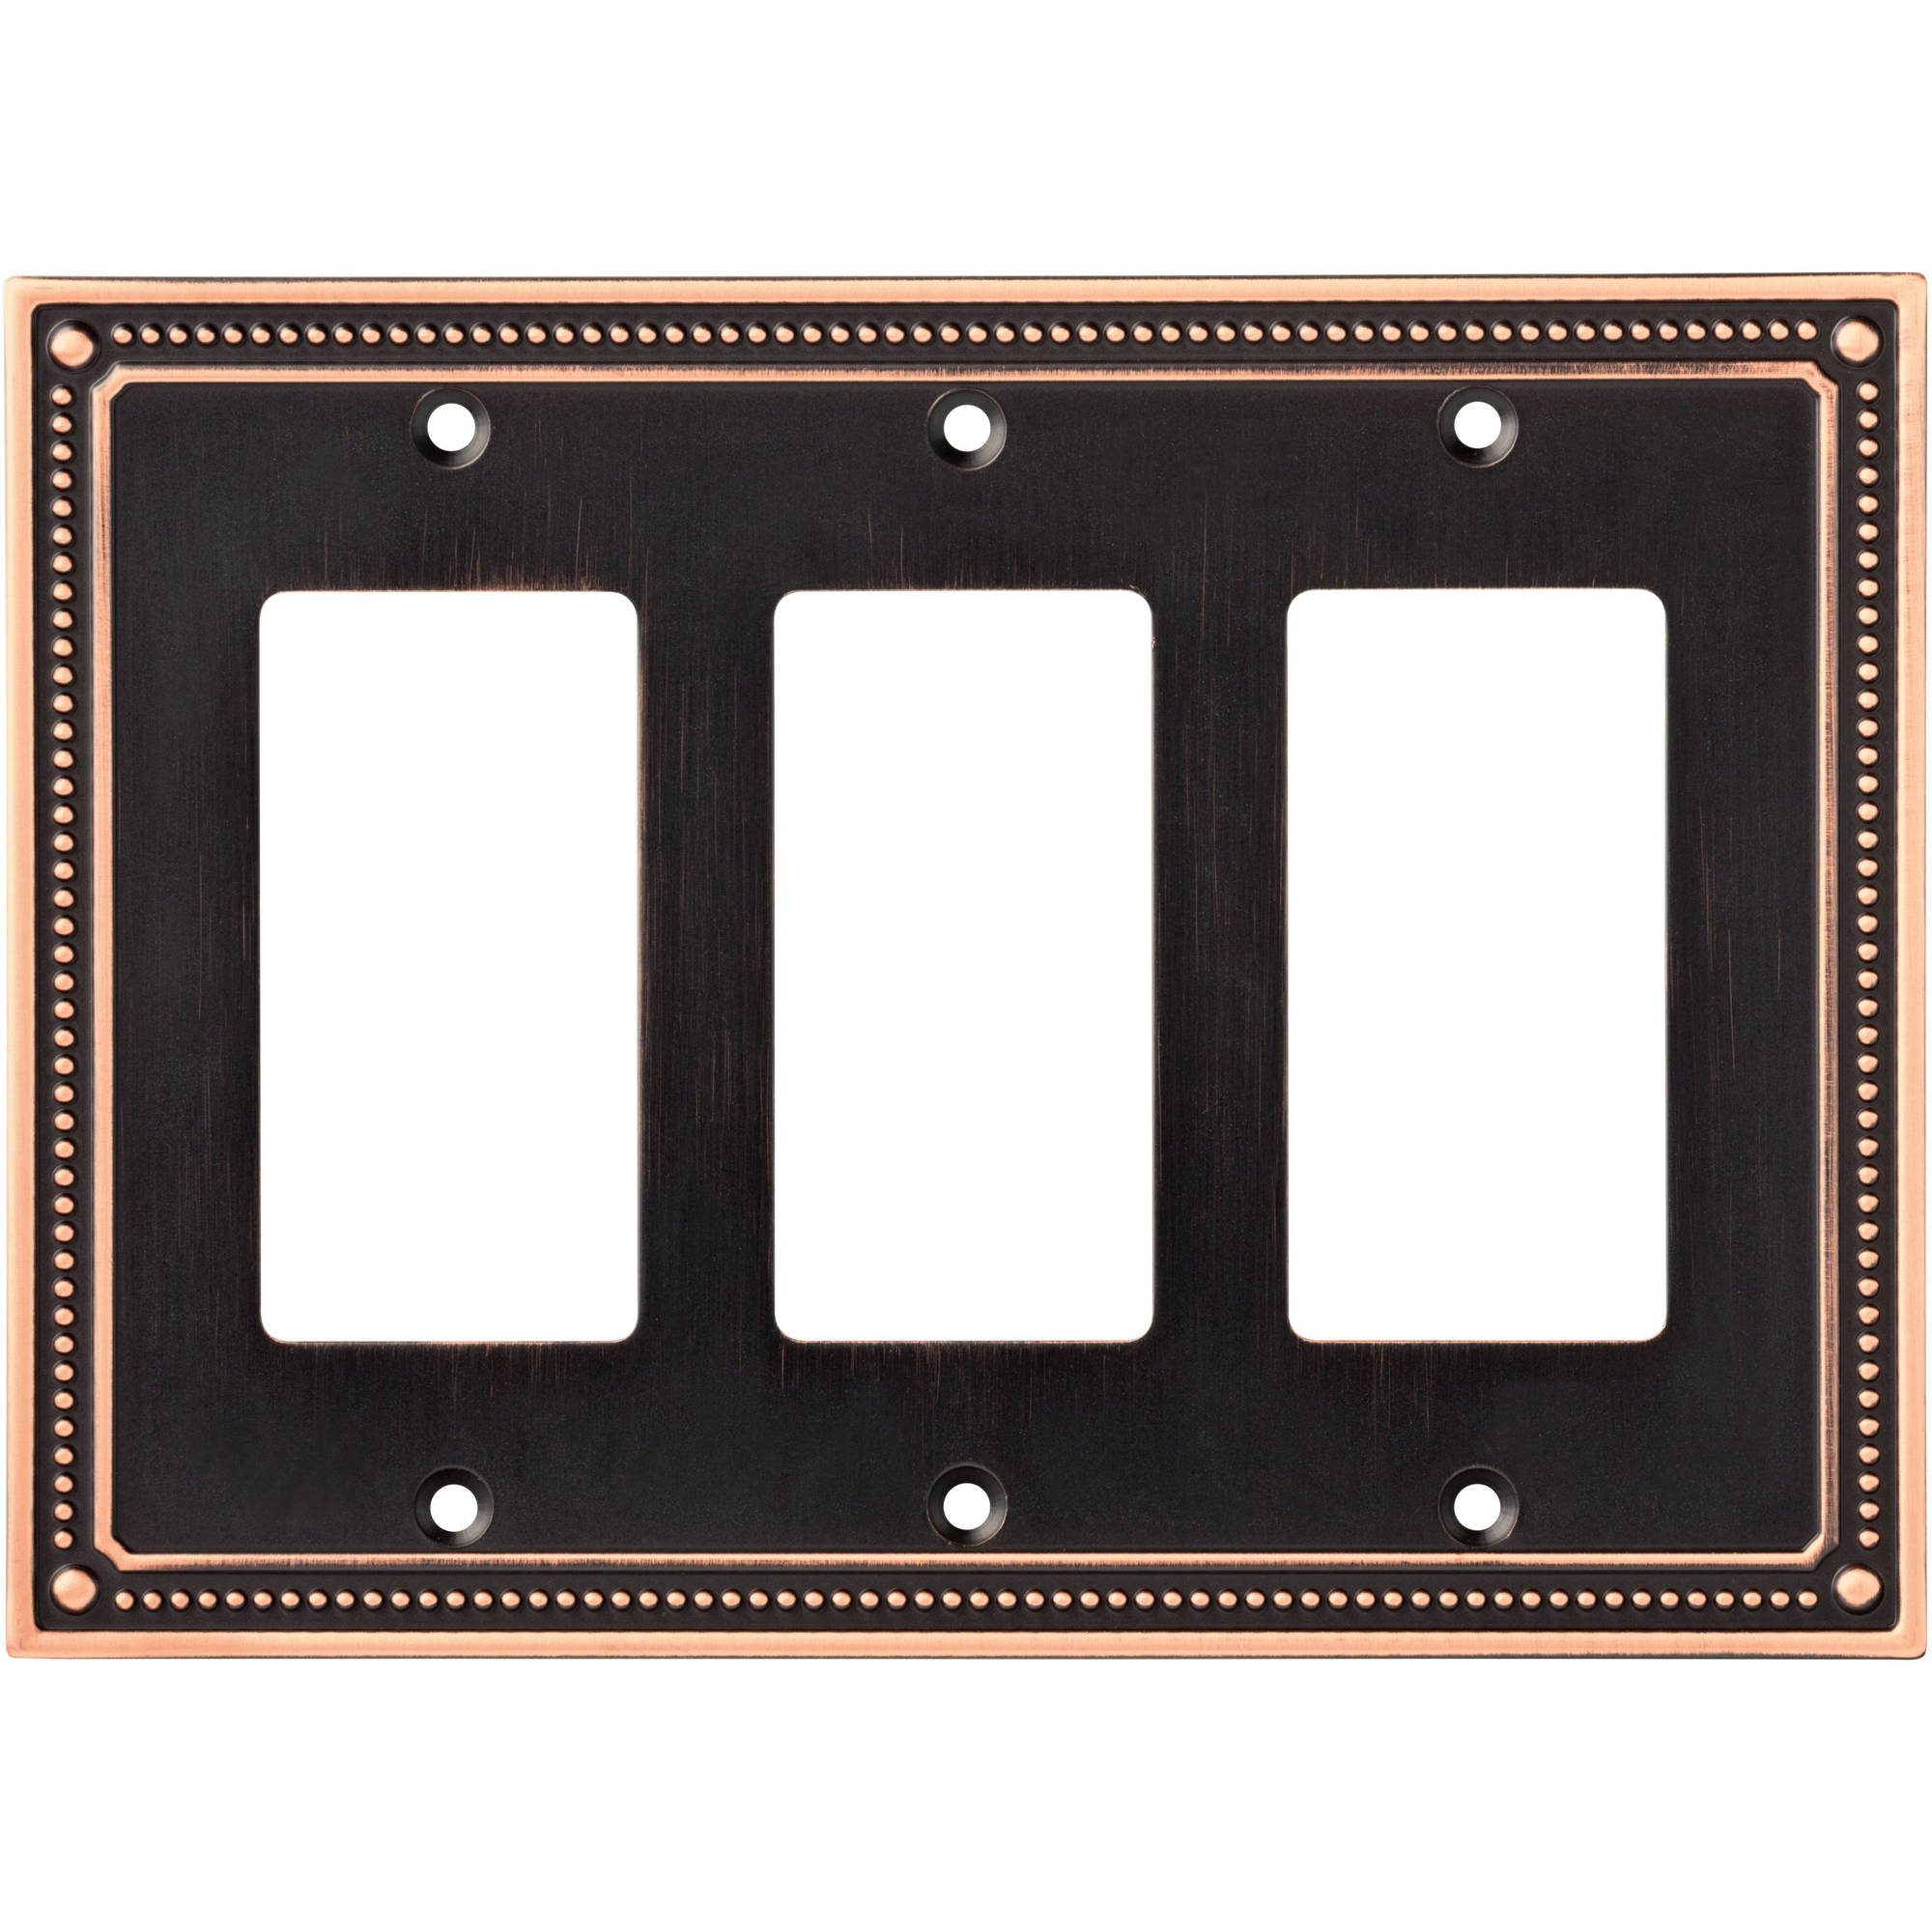 Franklin Brass Classic Beaded Triple Decorator Wall Plate in Bronze with Copper Highlights